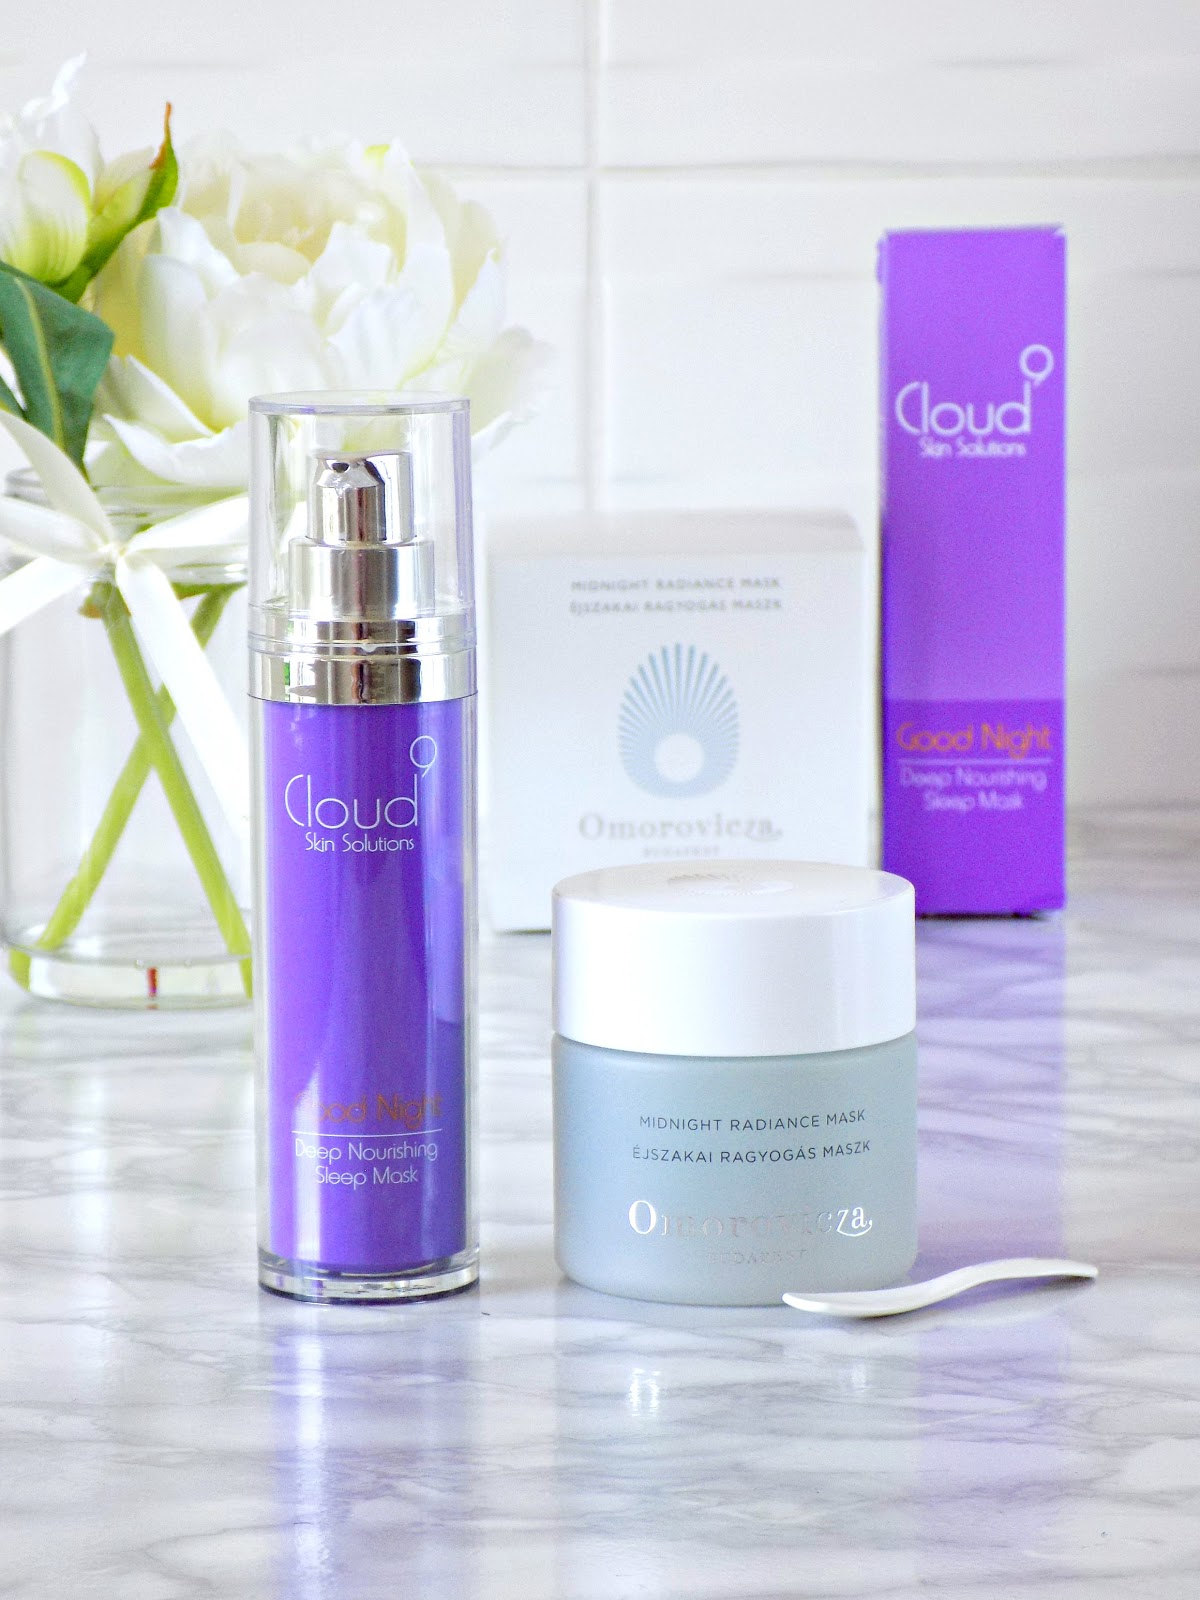 Cloud 9 Skin Solutions Good Night Deep Nourishing Sleep Mask and Omorovicza Midnight Radiance Mask